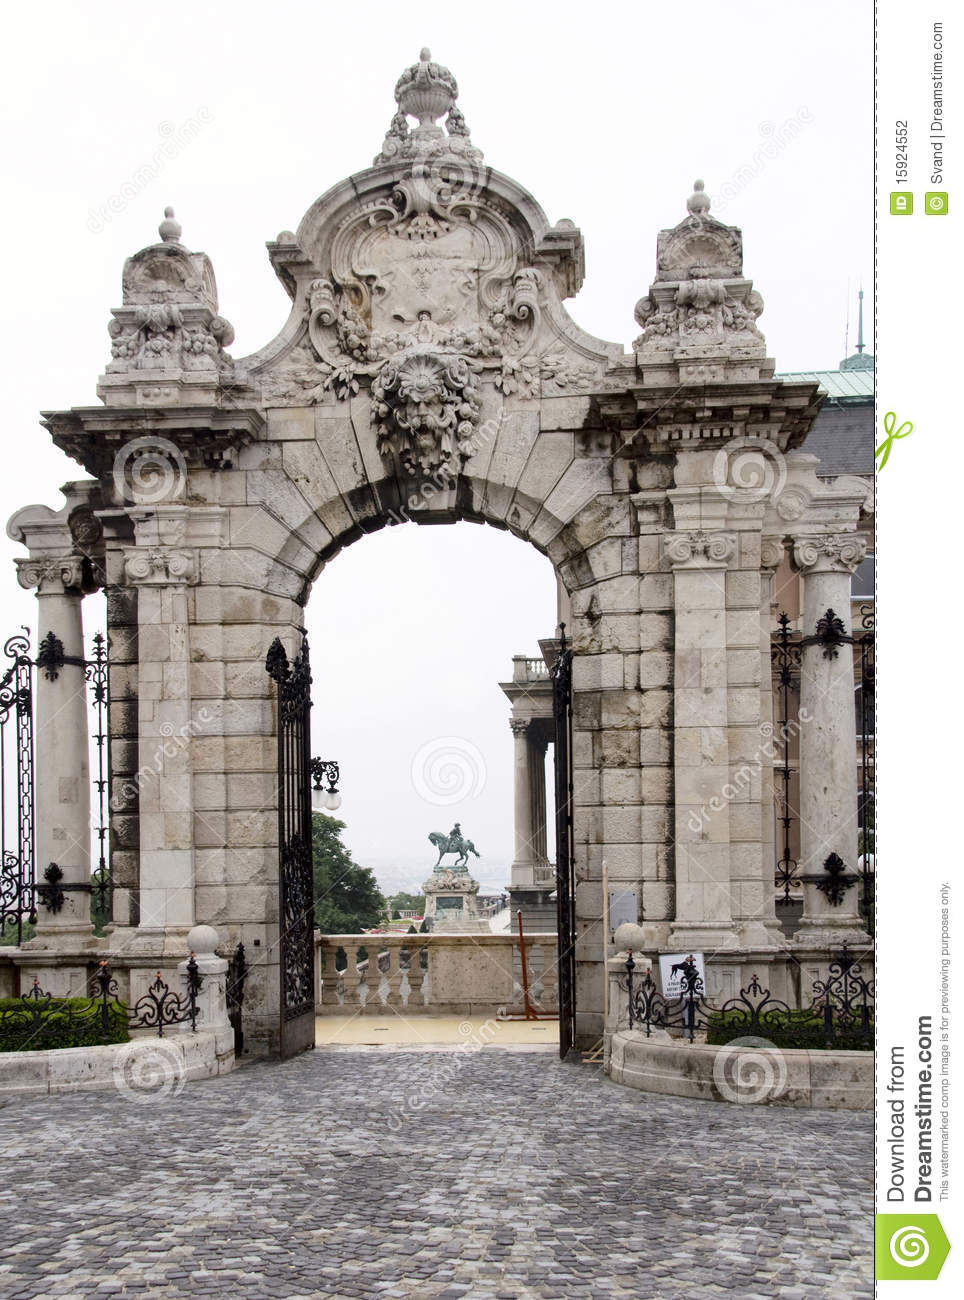 Entrance To The Budapest Castle Stock Photography - Image: 15924552